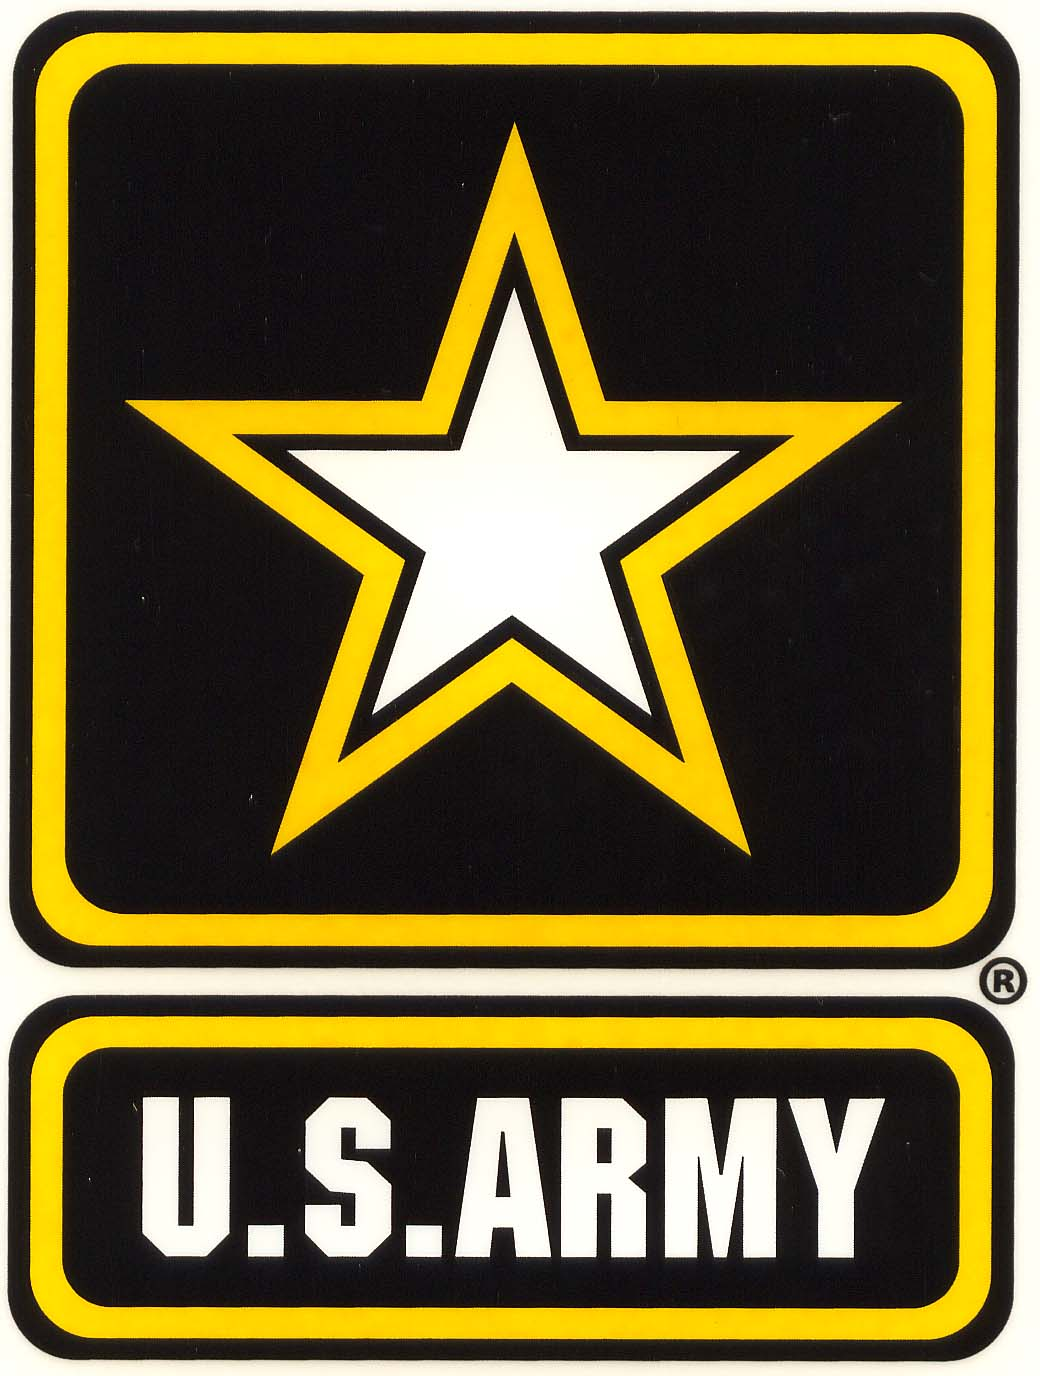 Us army logo clipart graphic black and white download Military clip art free army clipart clipartix - Cliparting.com graphic black and white download